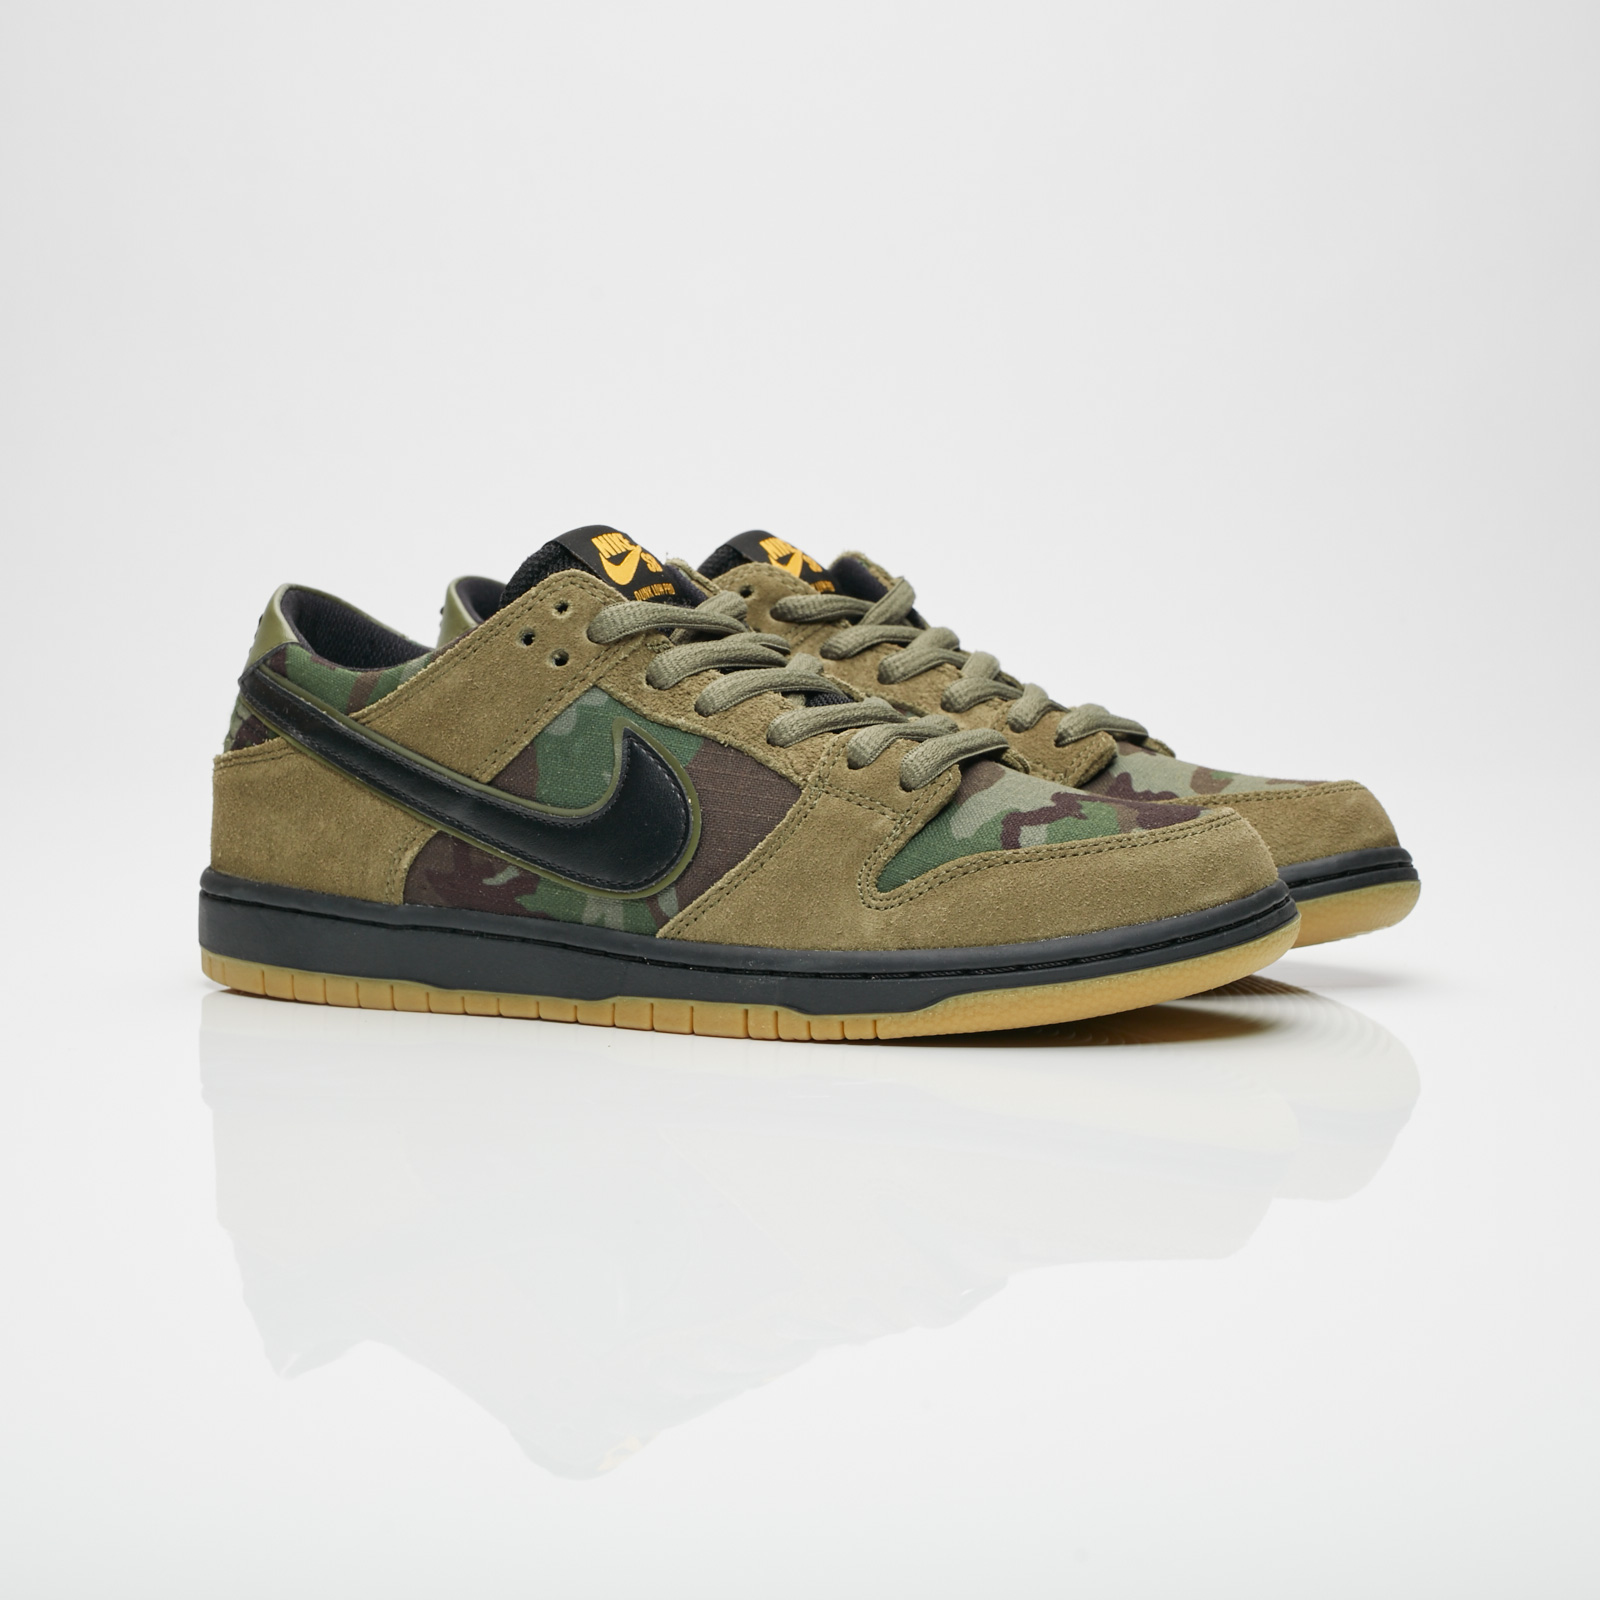 4cbd30a00e6 Nike Zoom Dunk Low Pro - 854866-209 - Sneakersnstuff